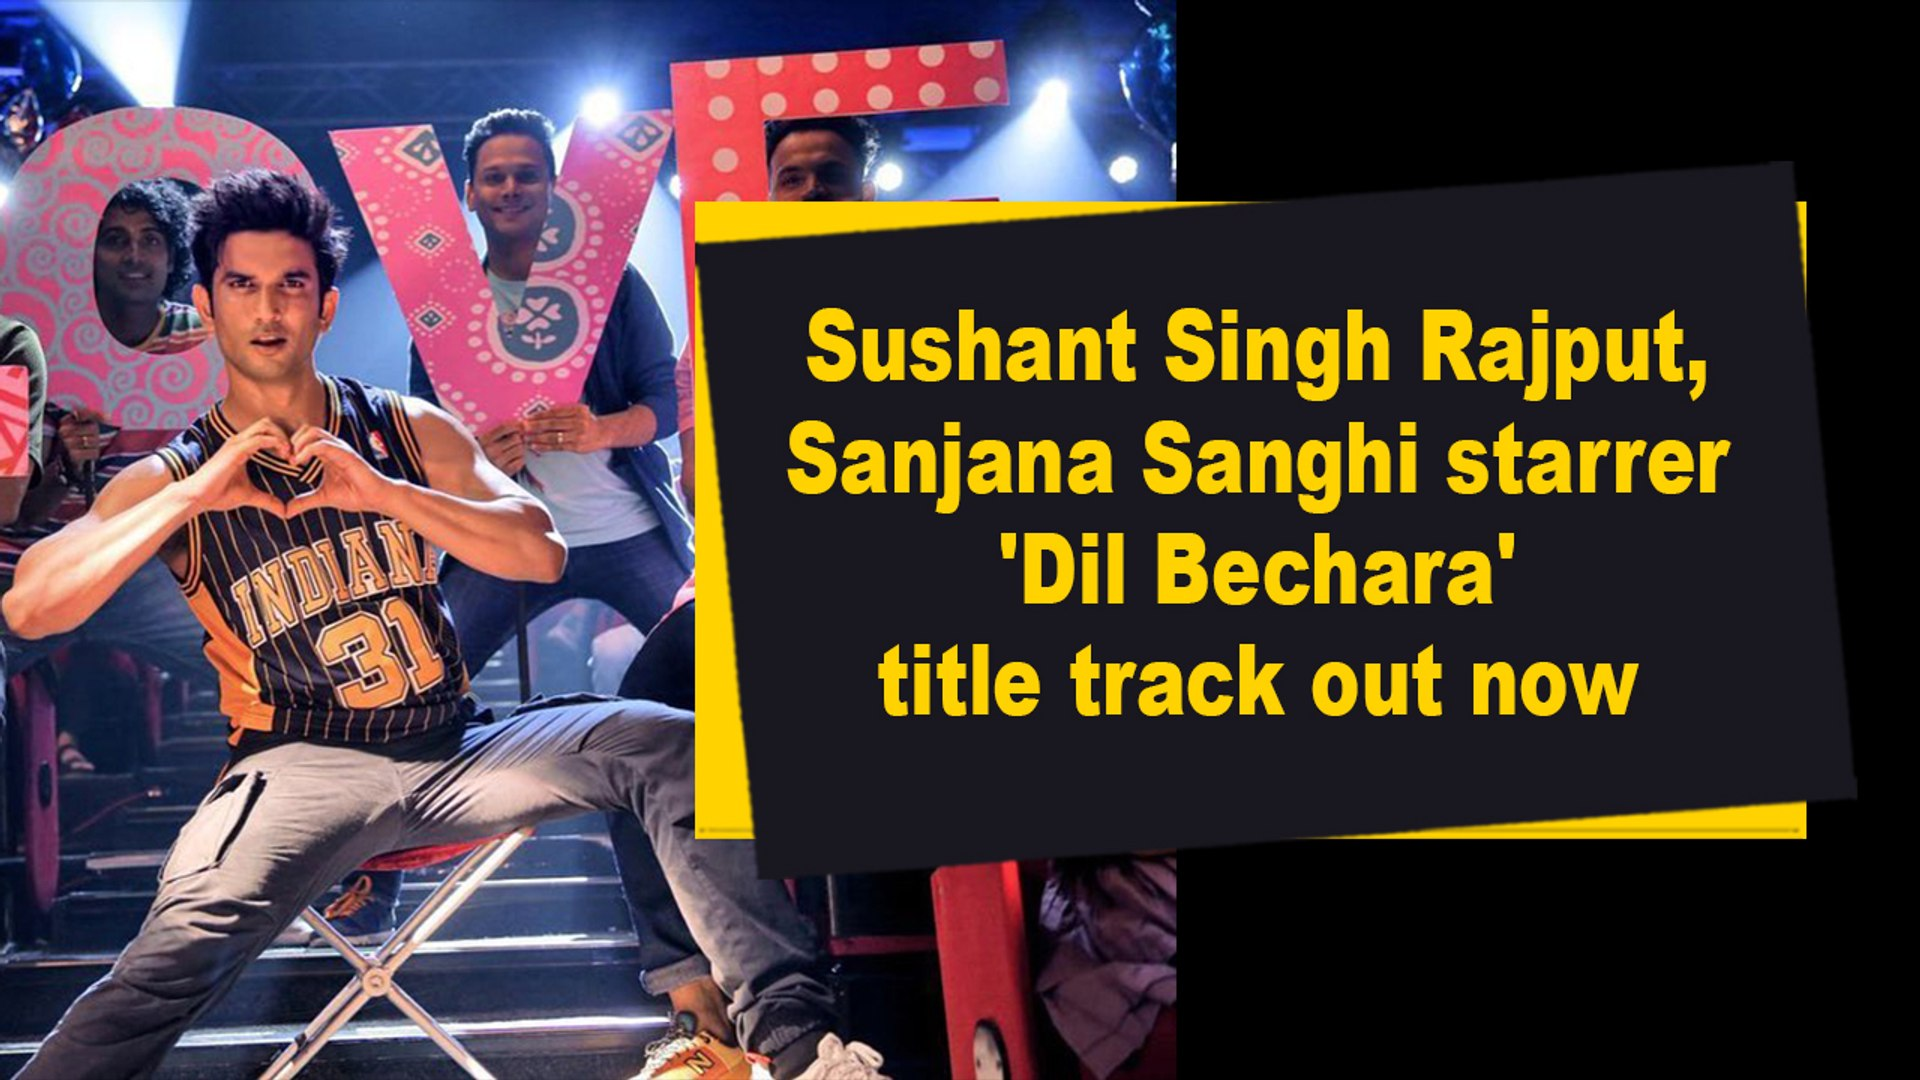 Sushant Singh Rajput, Sanjana Sanghi starrer 'Dil Bechara' title track out now